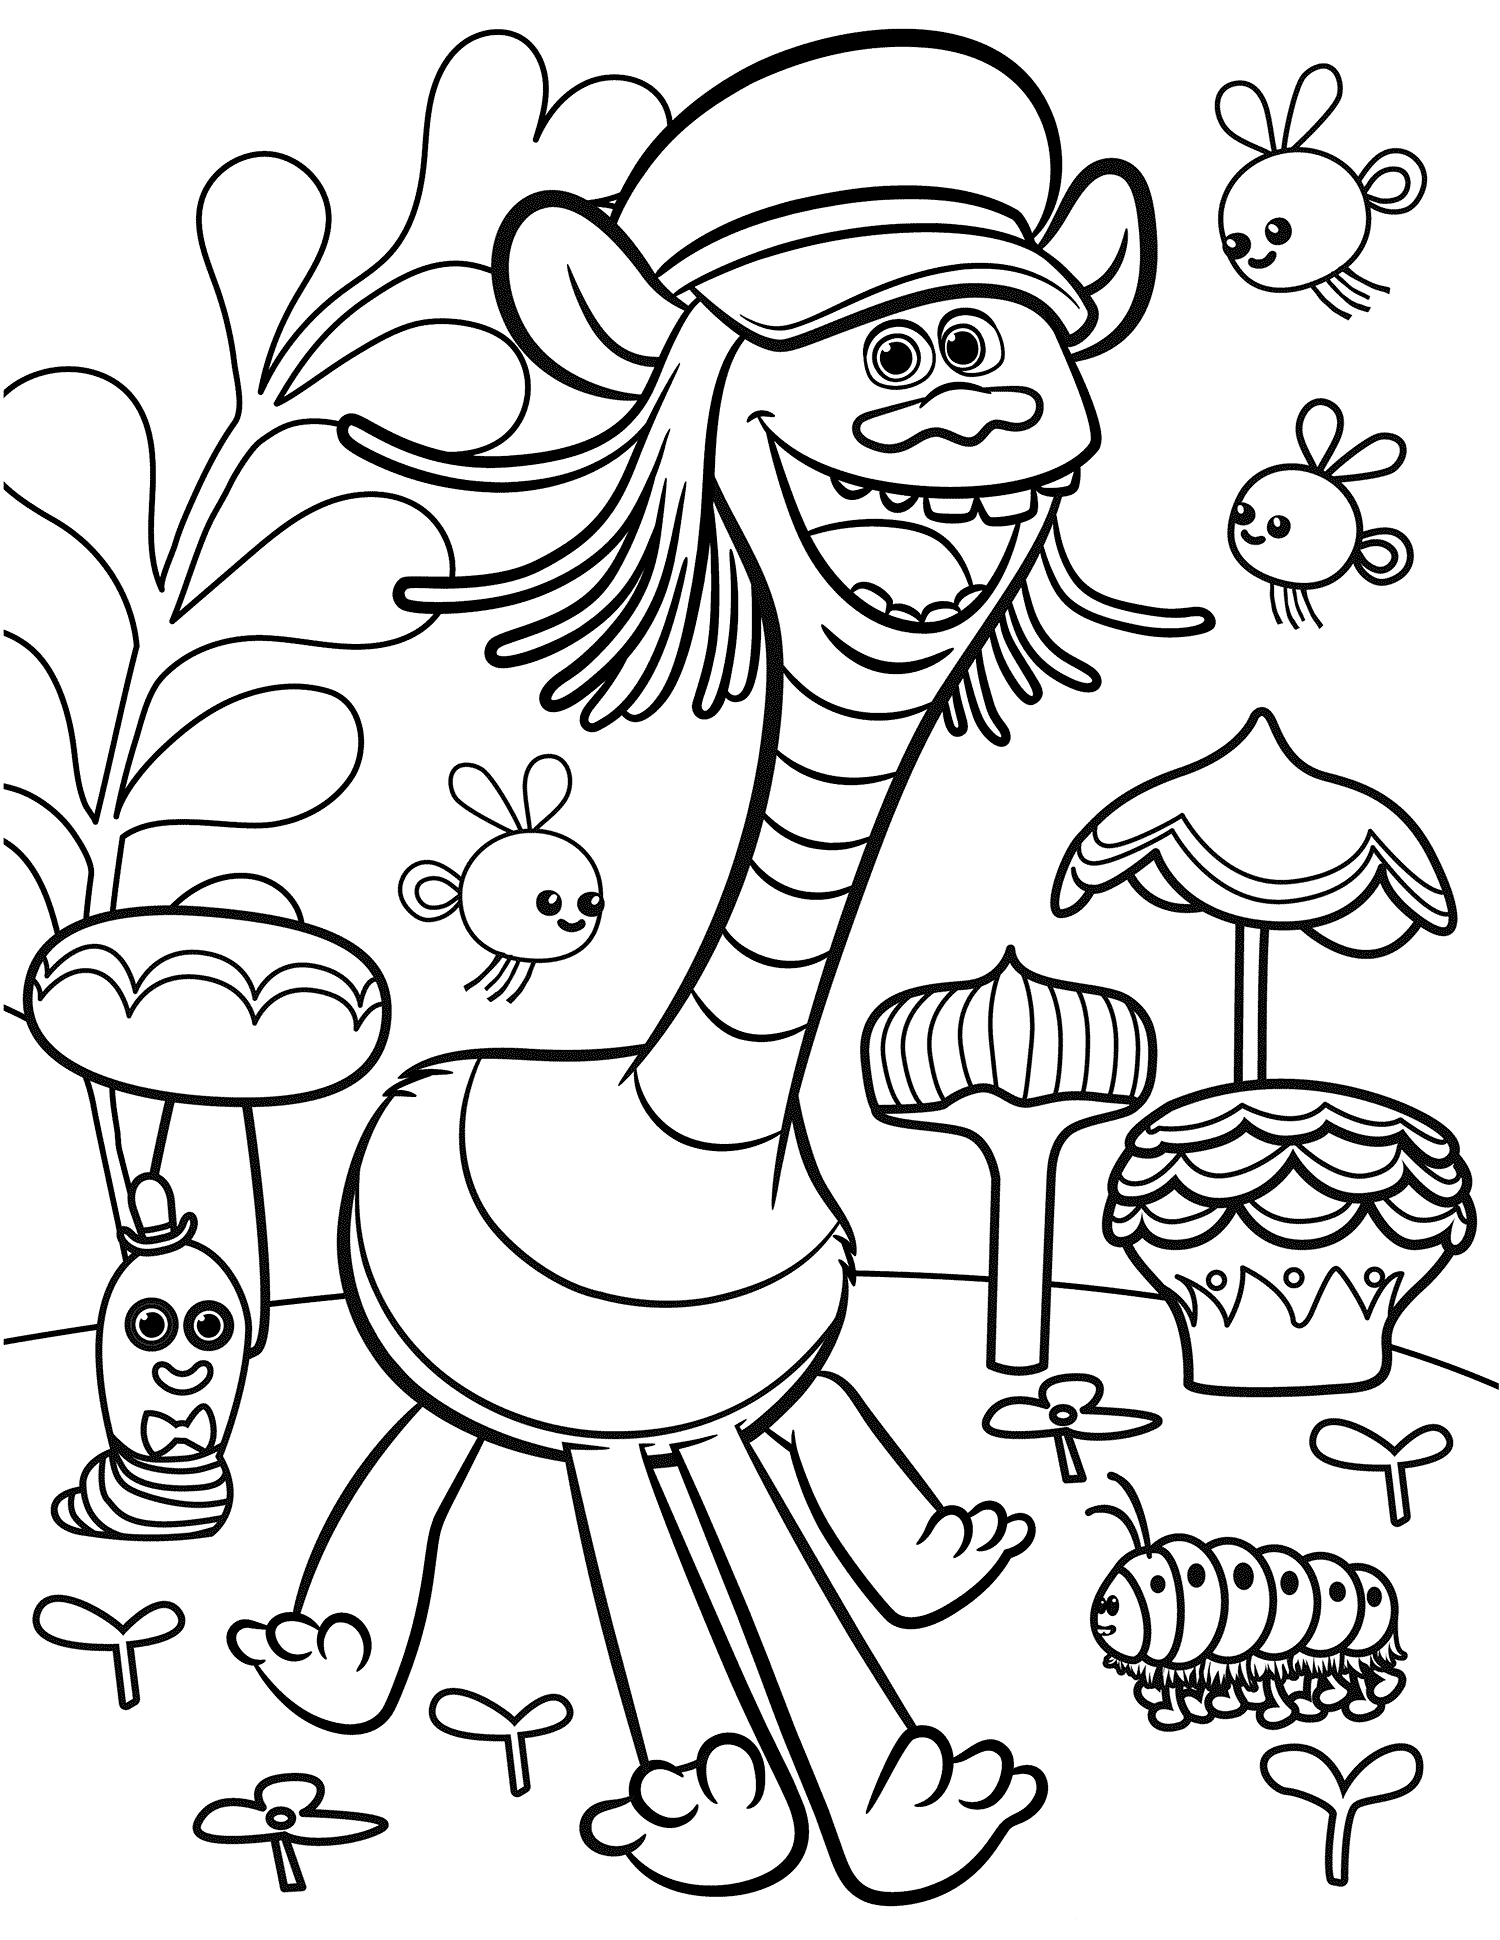 Trolls movie coloring pages best coloring pages for kids for Coloring pages names